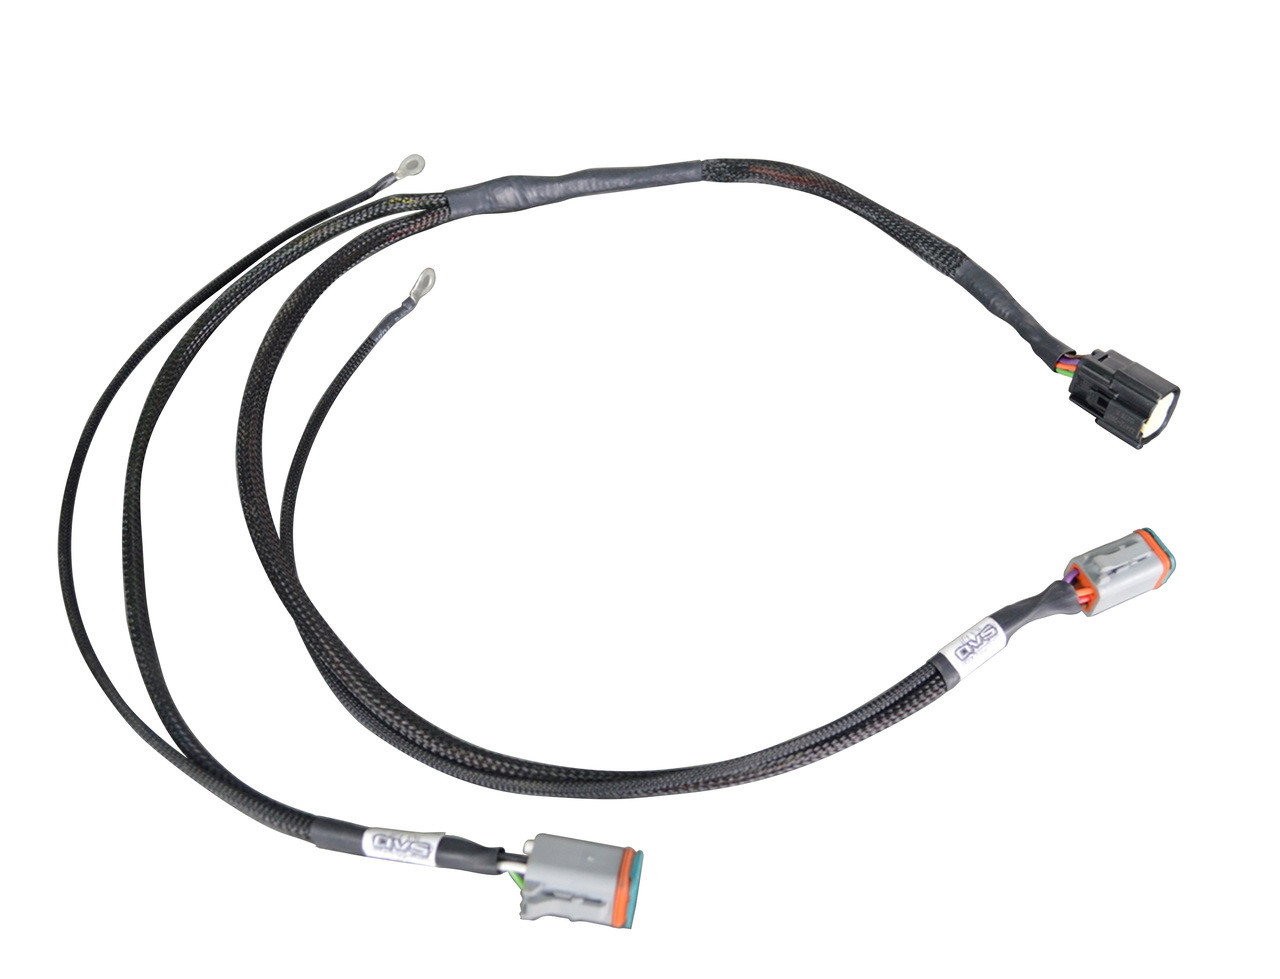 small resolution of avs valve wiring harness for accuair endo vt tank to e level switchspeed